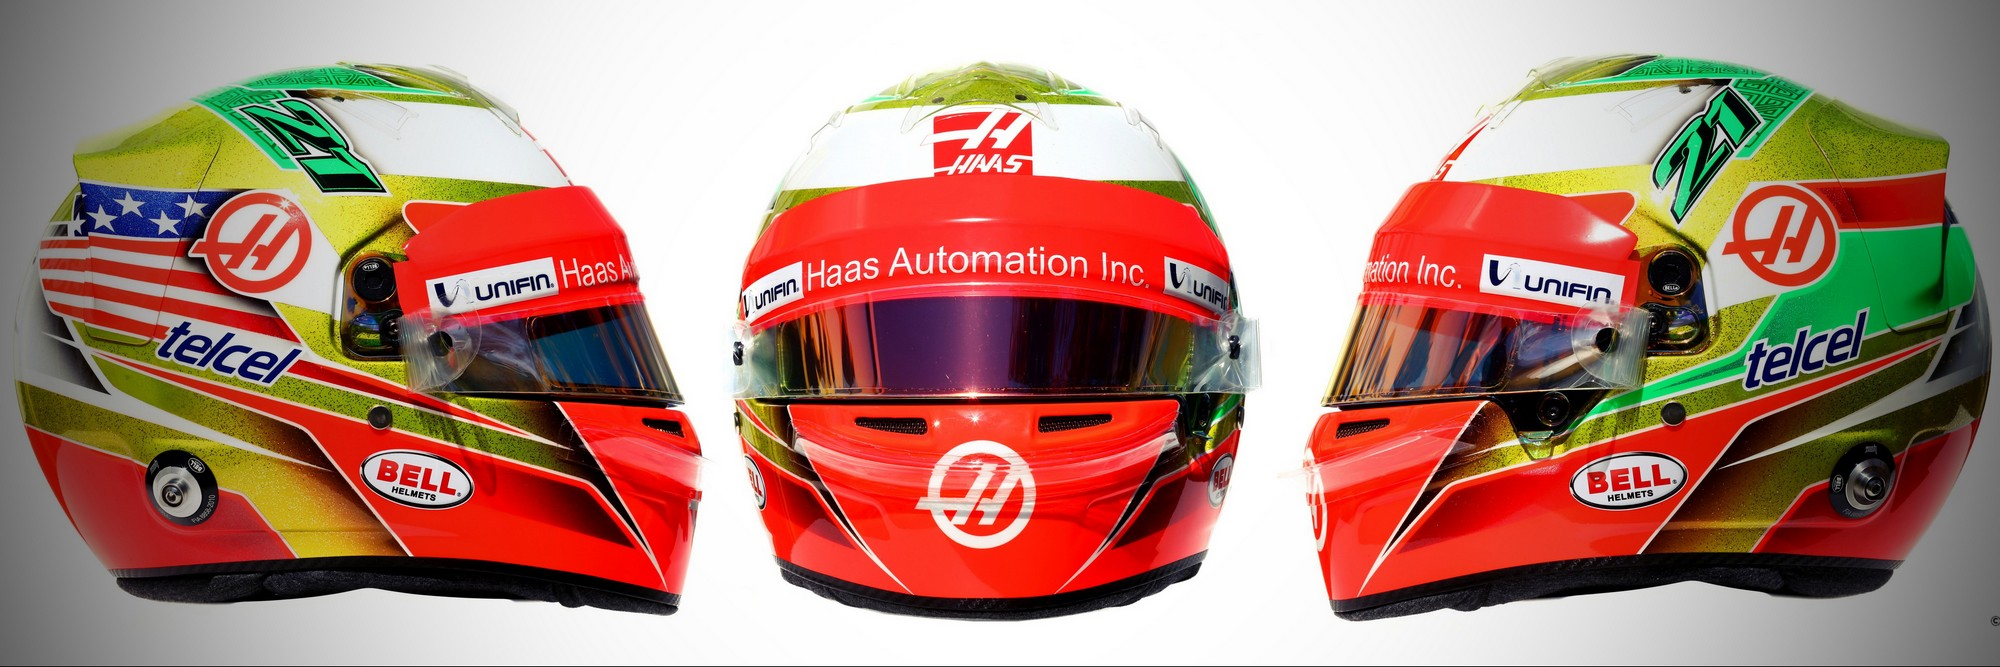 Шлем Эстебана Гутьерреса на сезон 2016 года | 2016 helmet of Esteban Gutierrez